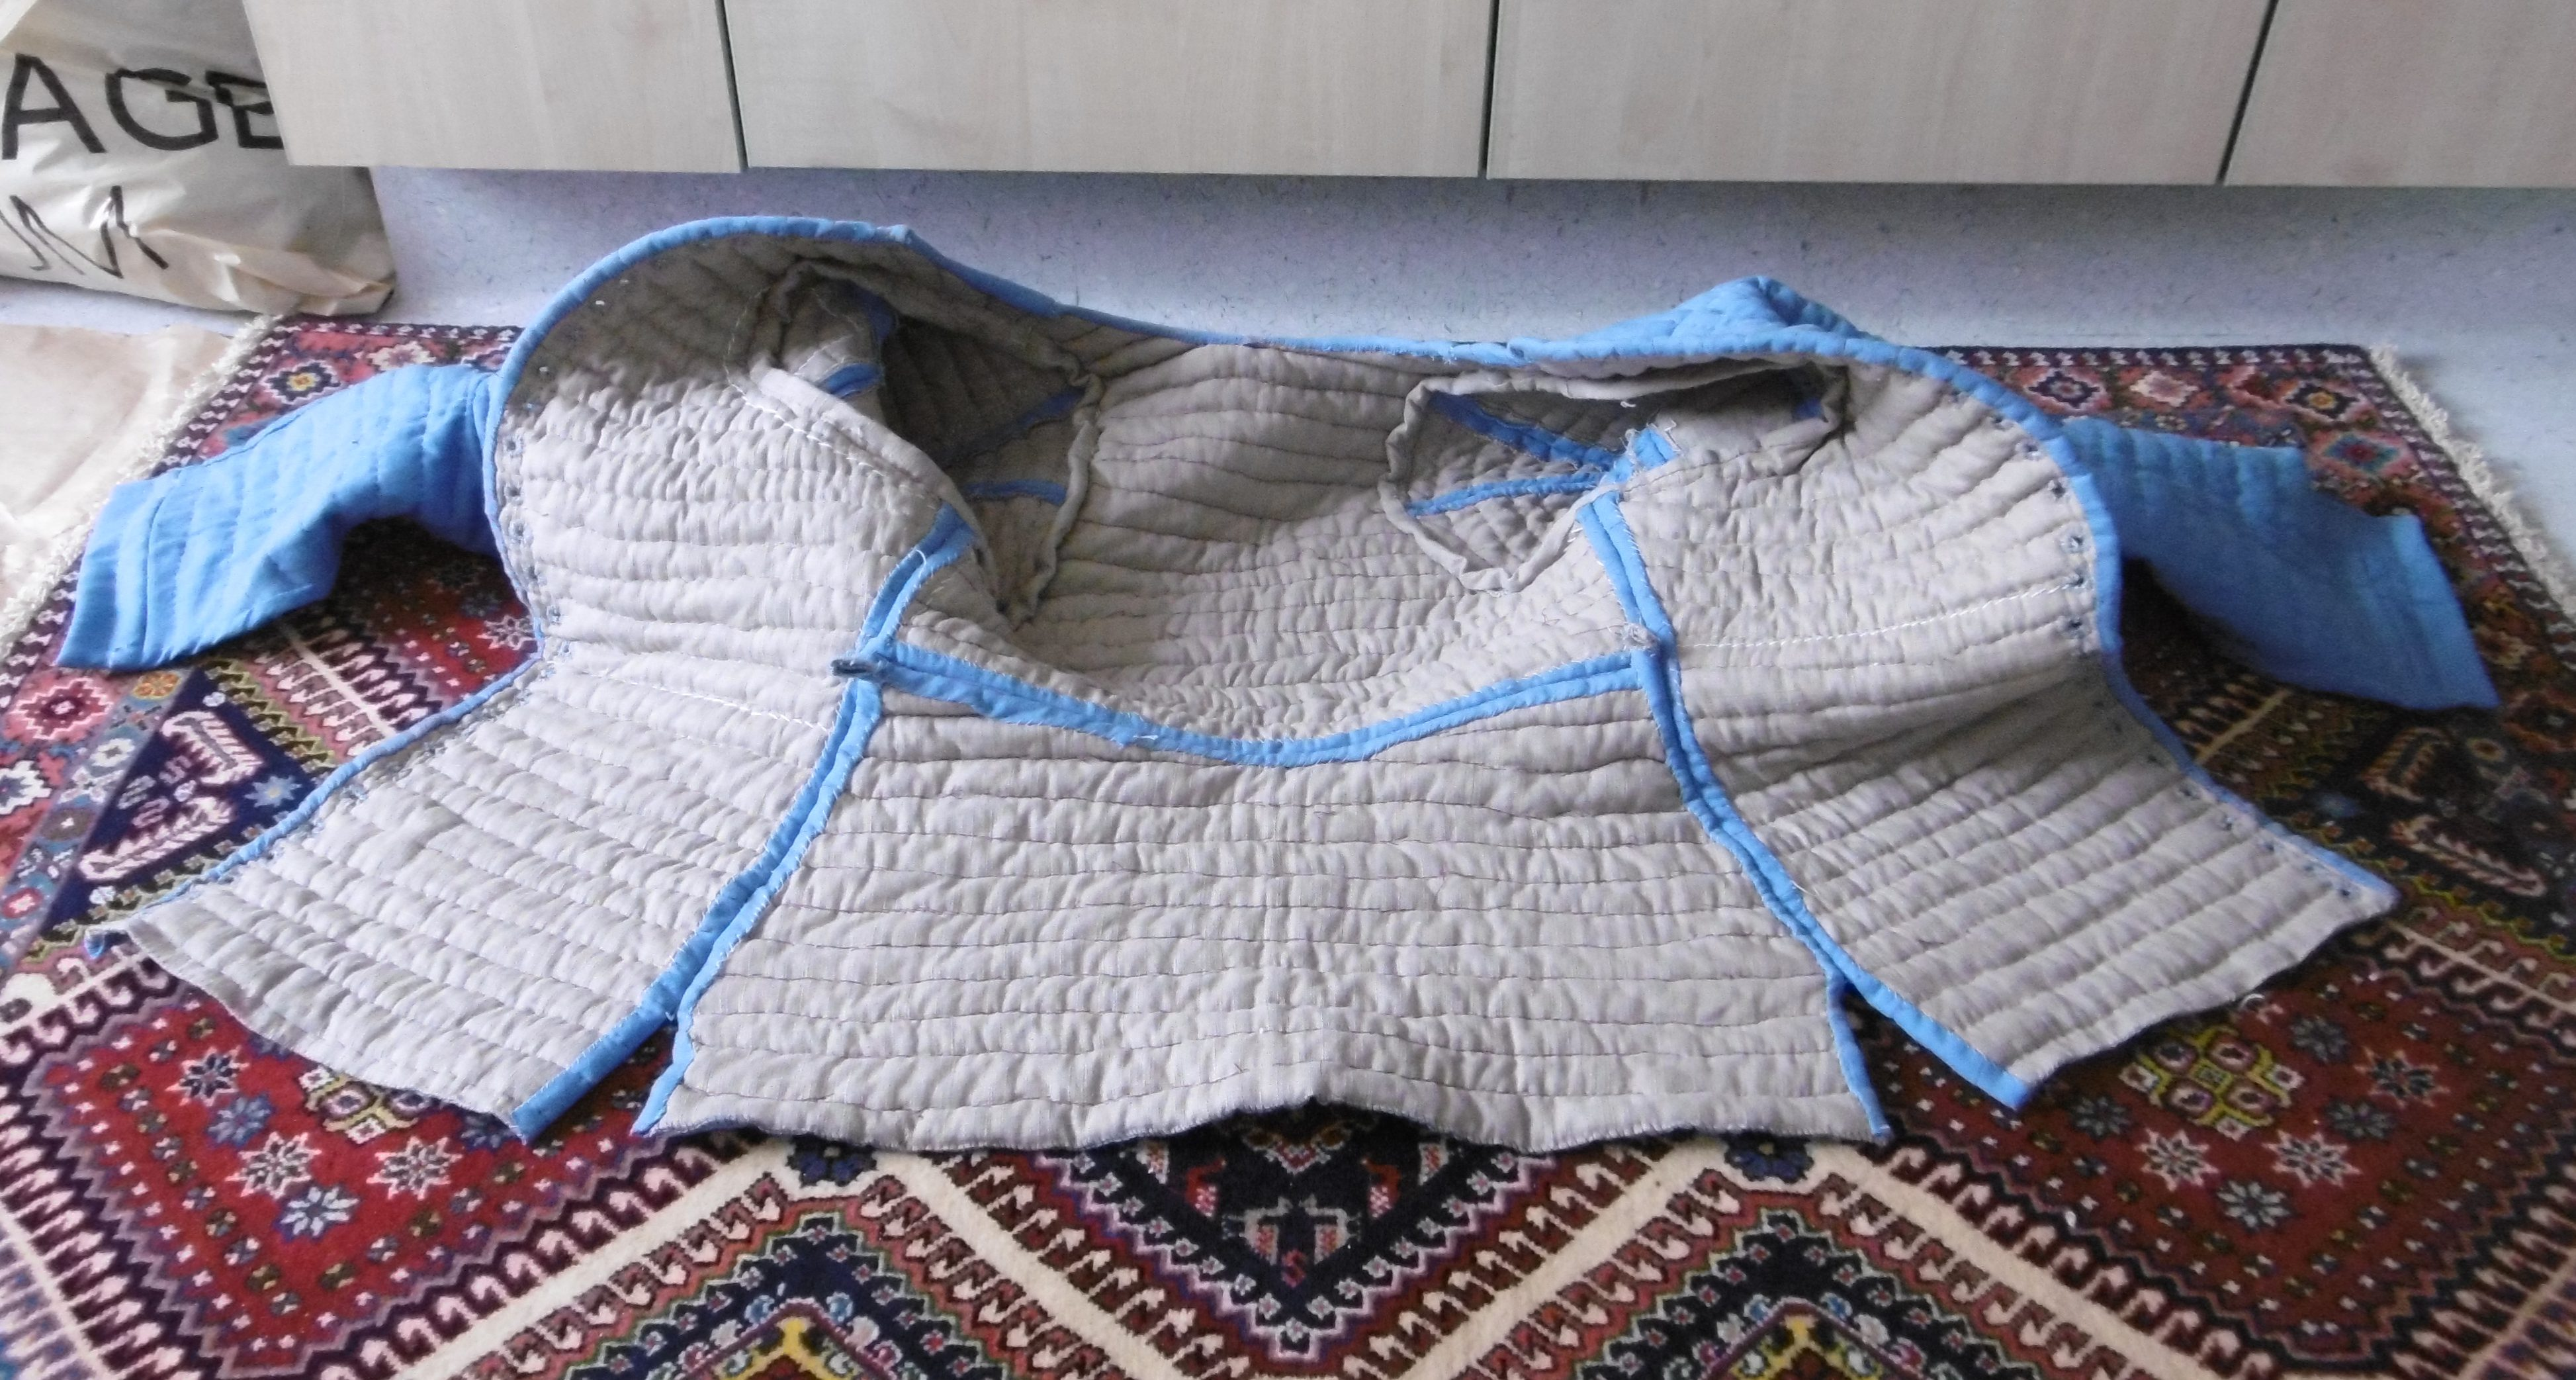 A quilted garment spread open on a carpet